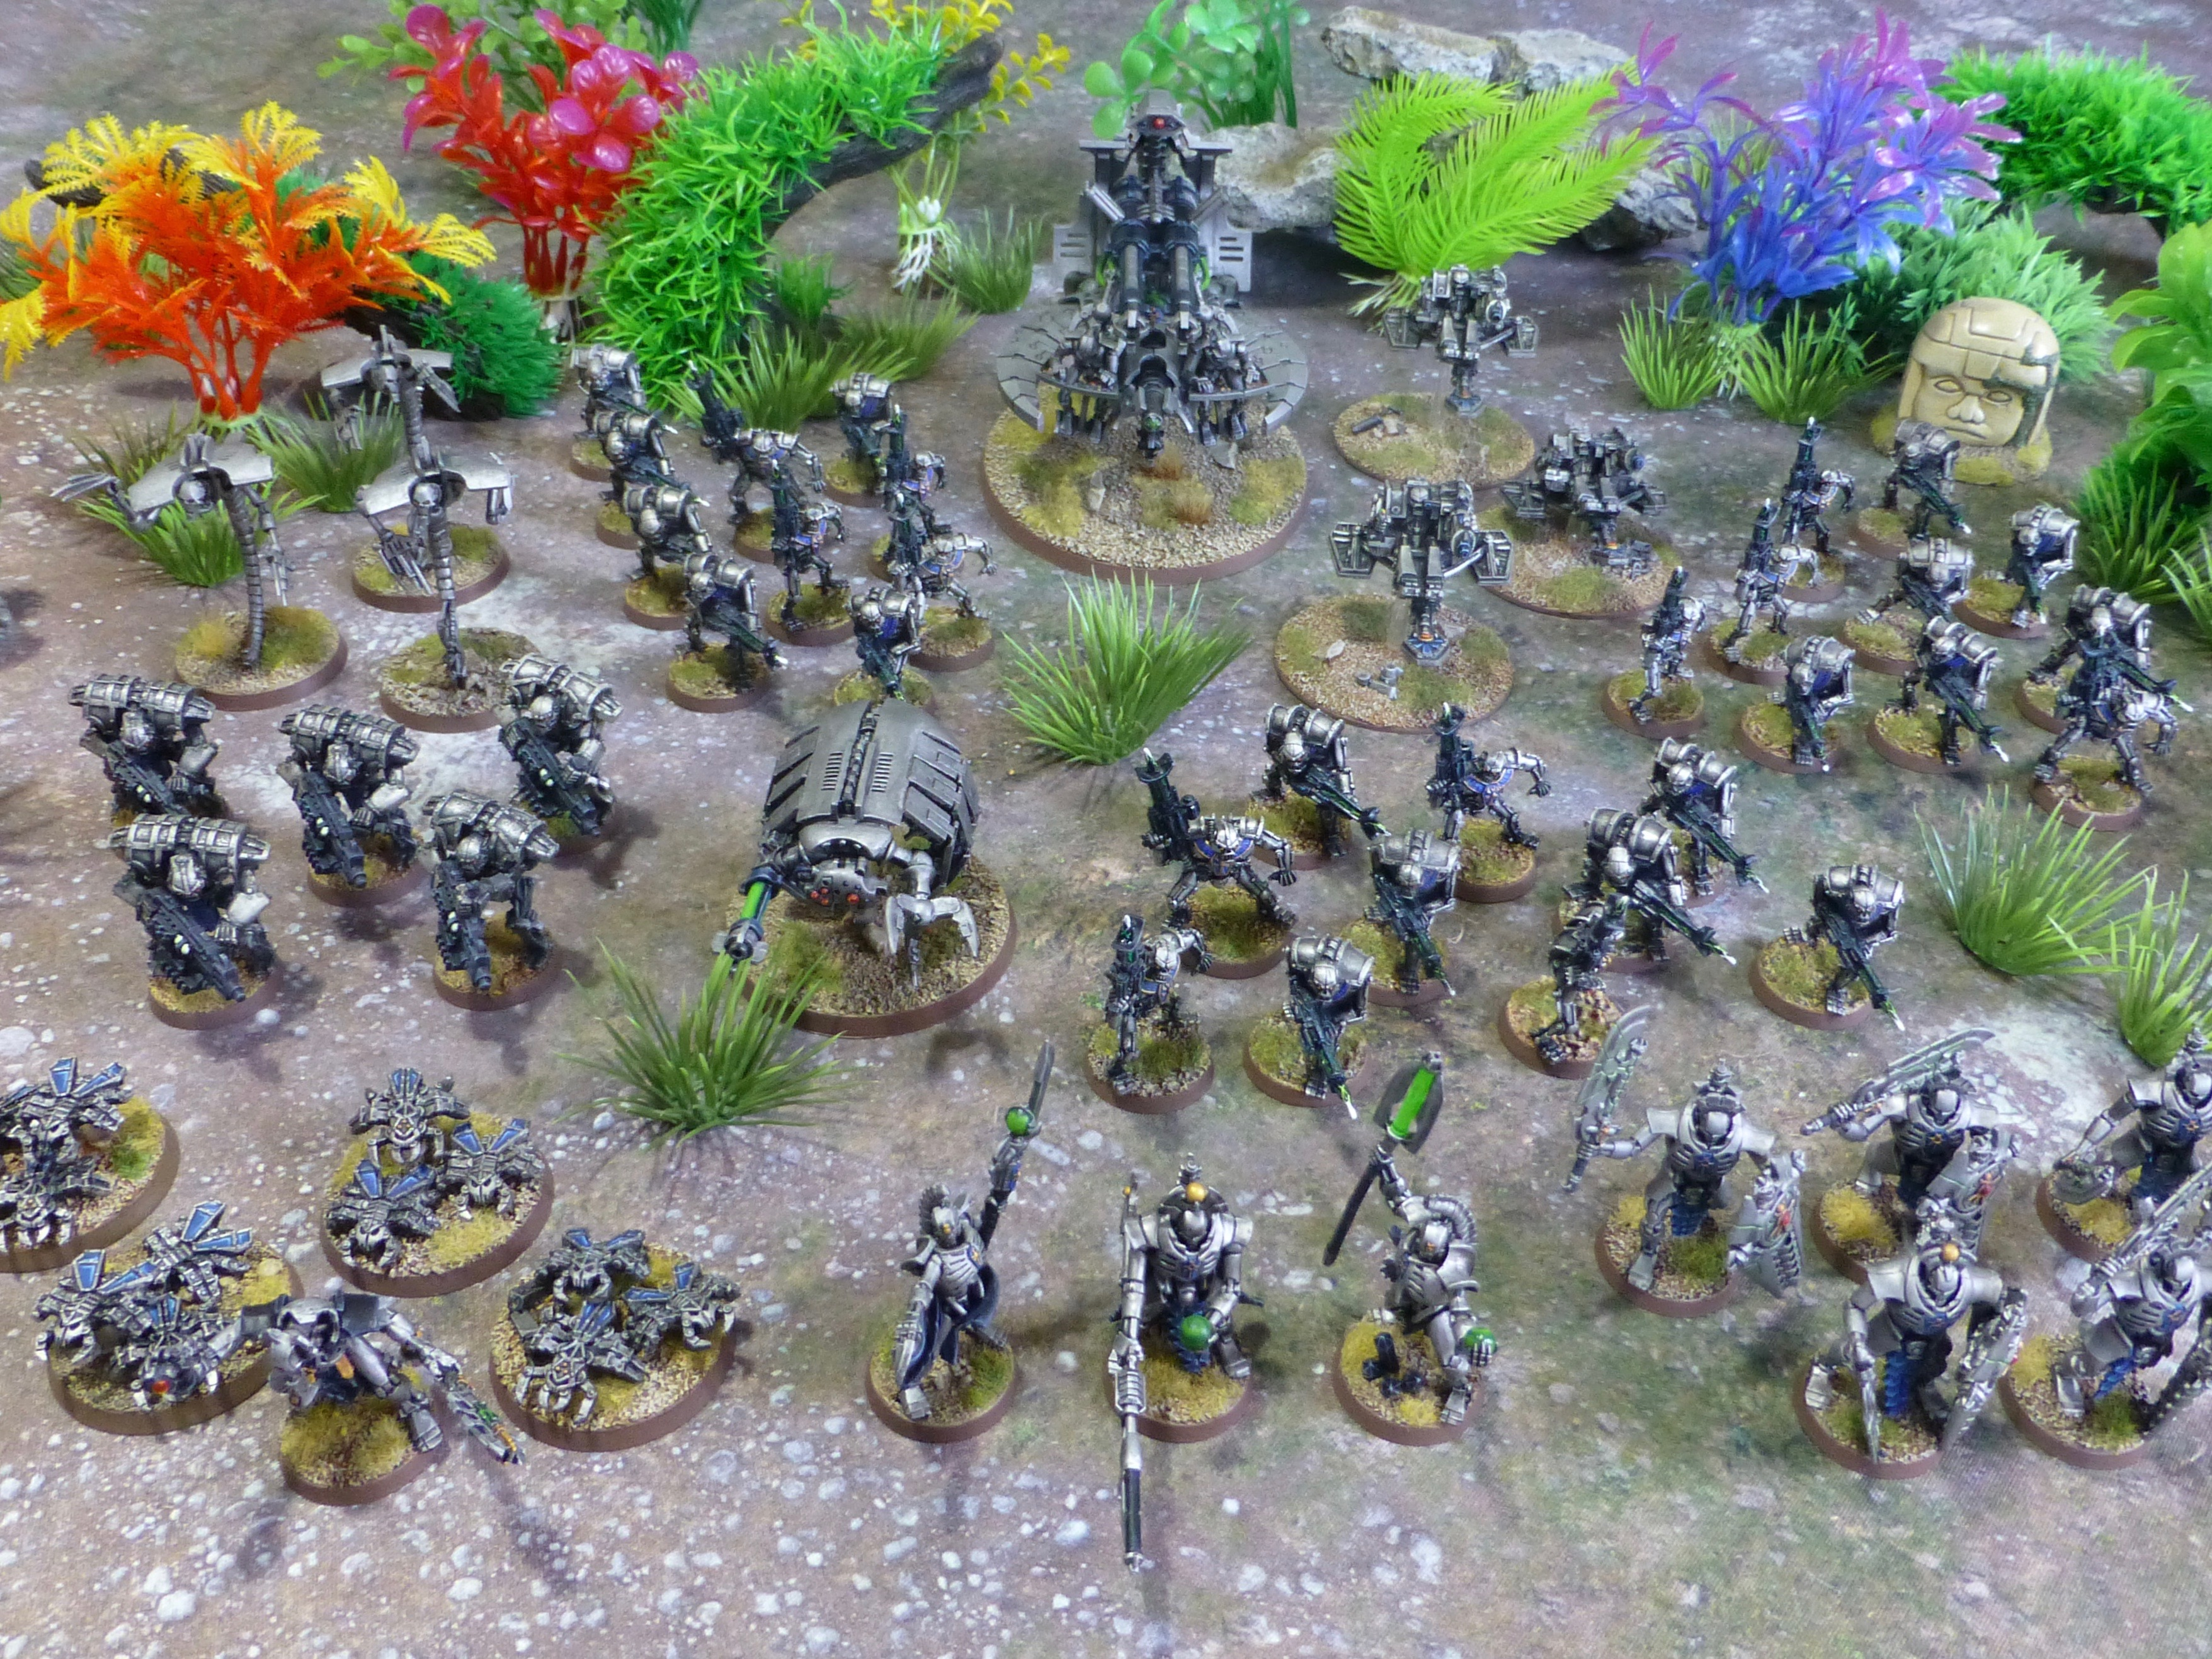 View from above on a force of dozens of robotic metal warriors and war machines in jungle terrain